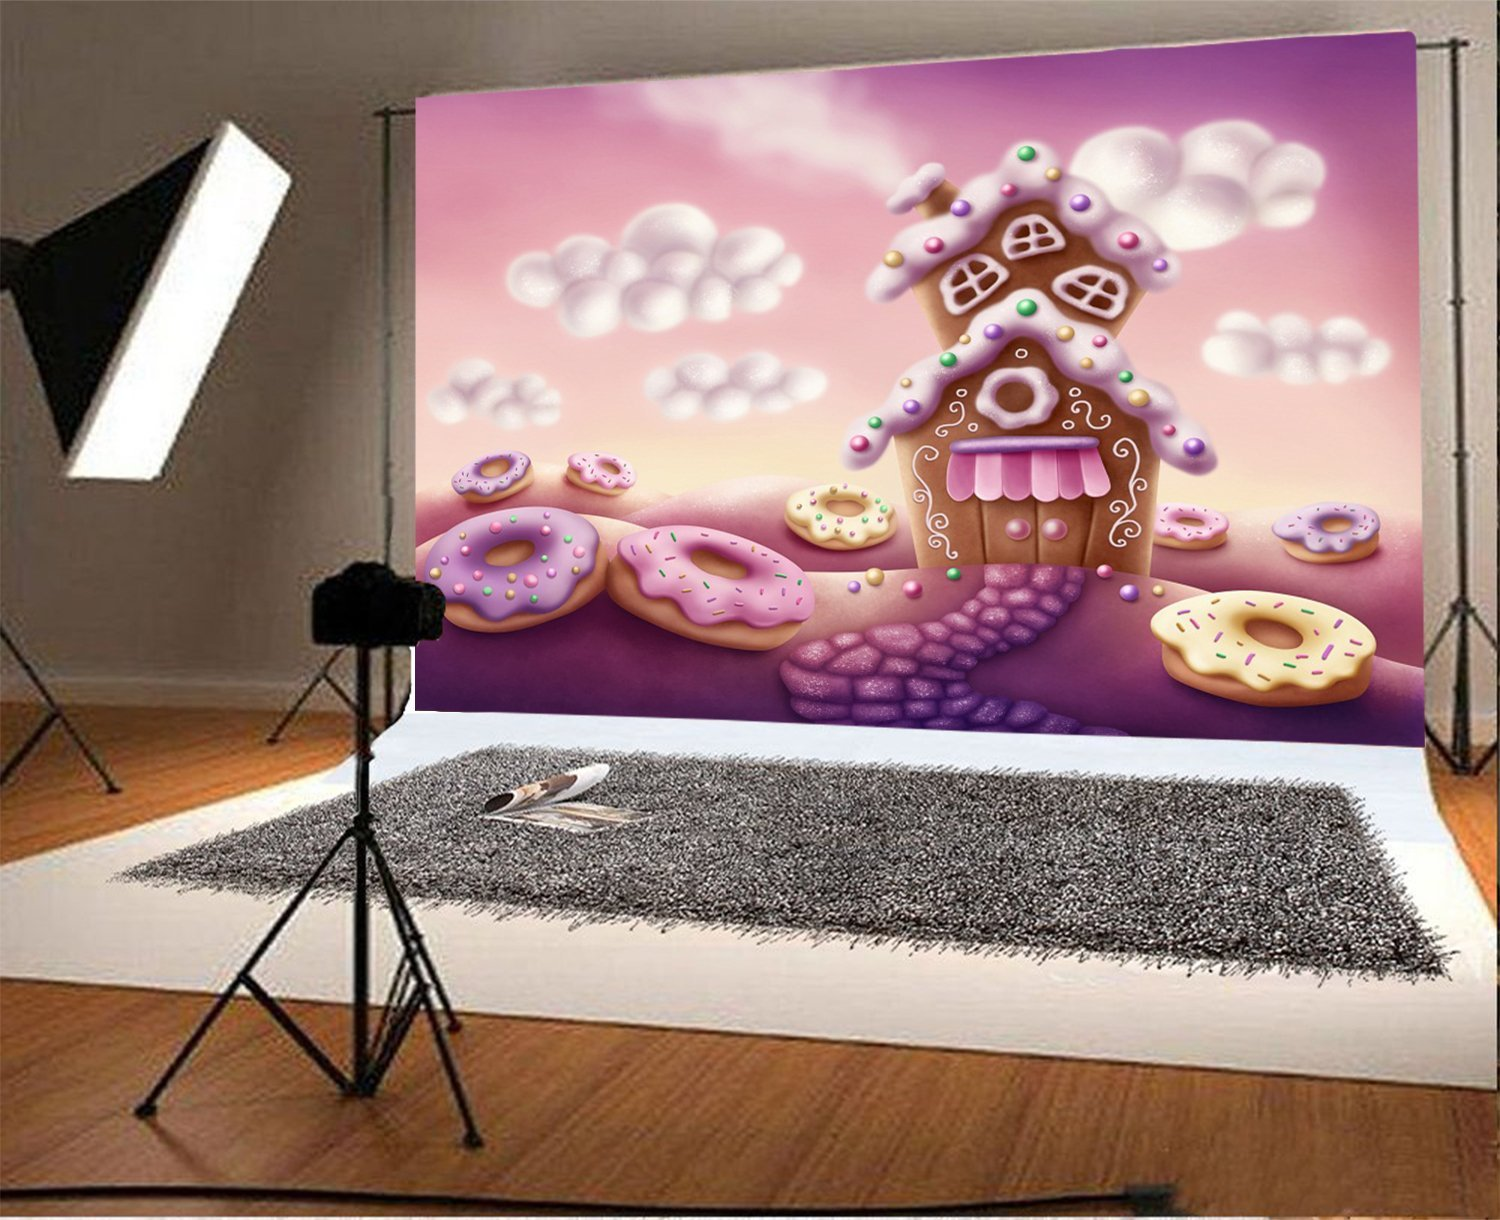 fantasy colorful houses gingerbread pink doughnut clouds cartoon Backgrounds Vinyl cloth Computer print wall photo backdrop